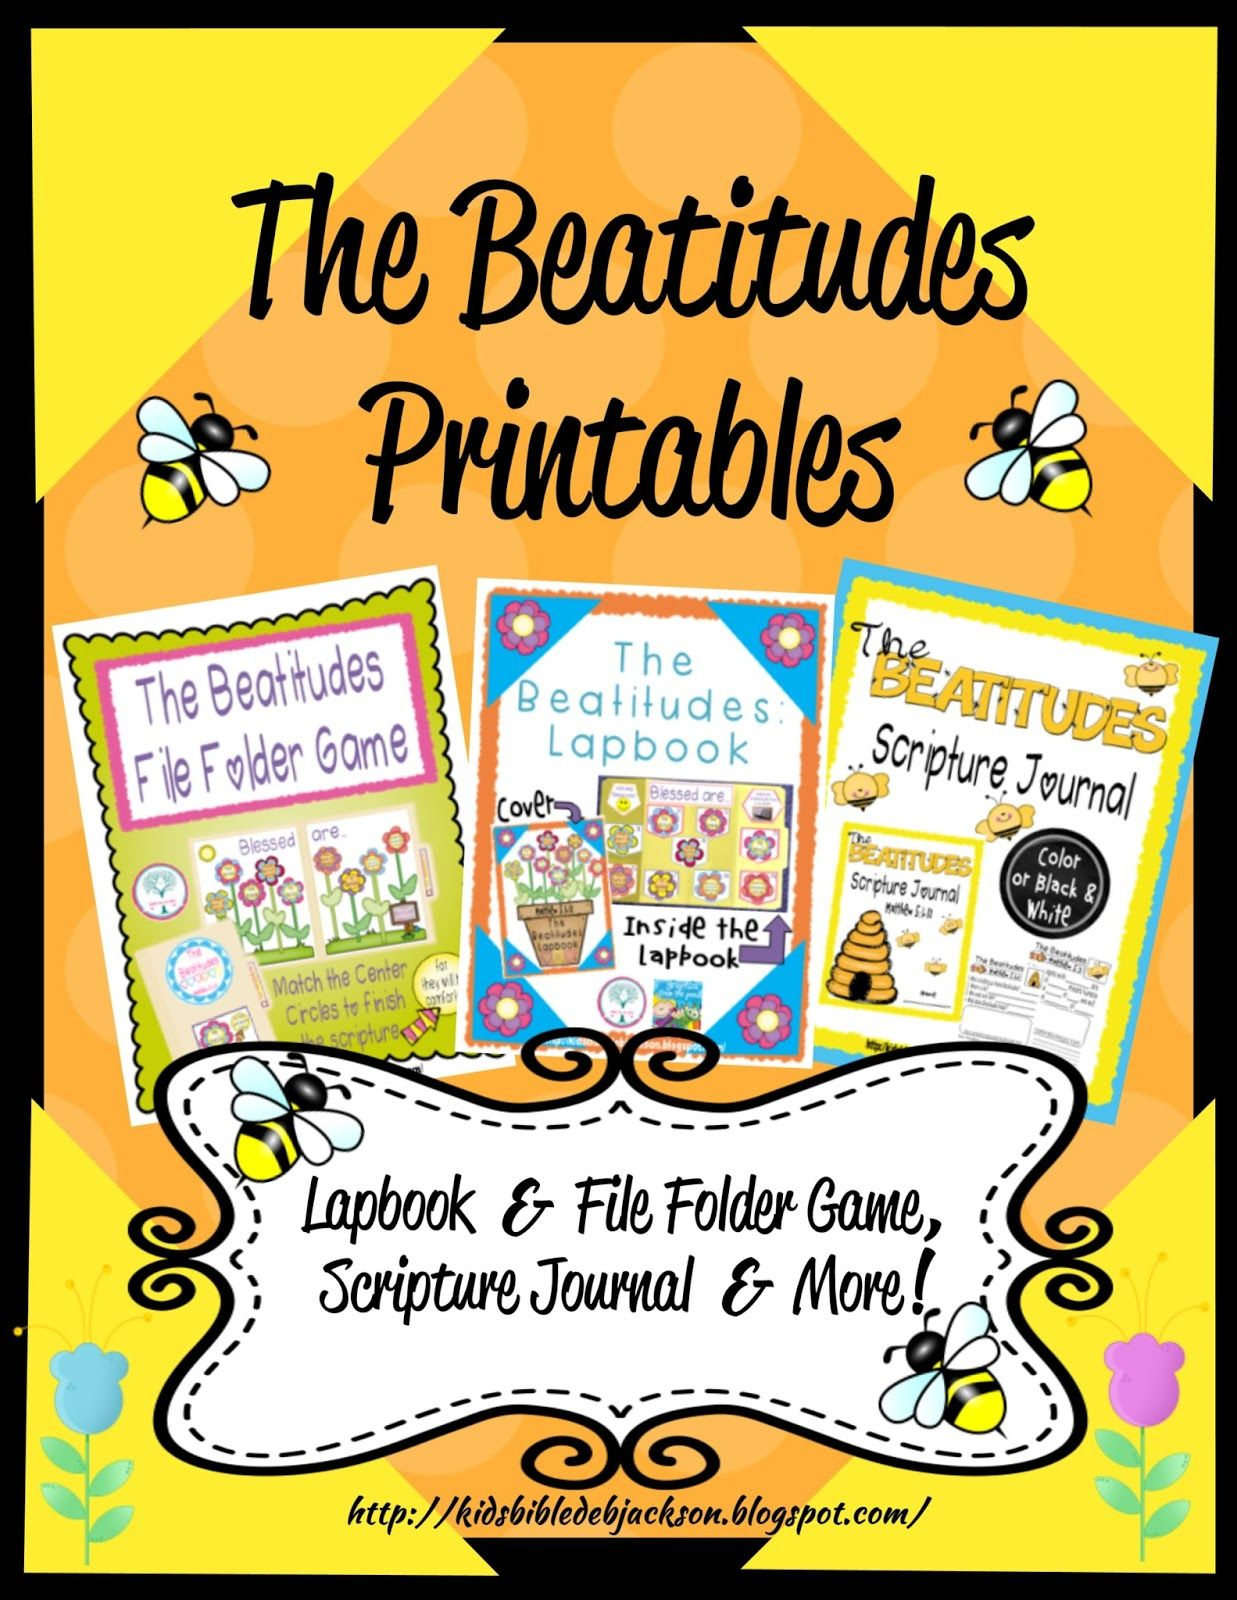 The Beatitudes Printables More Not Shown